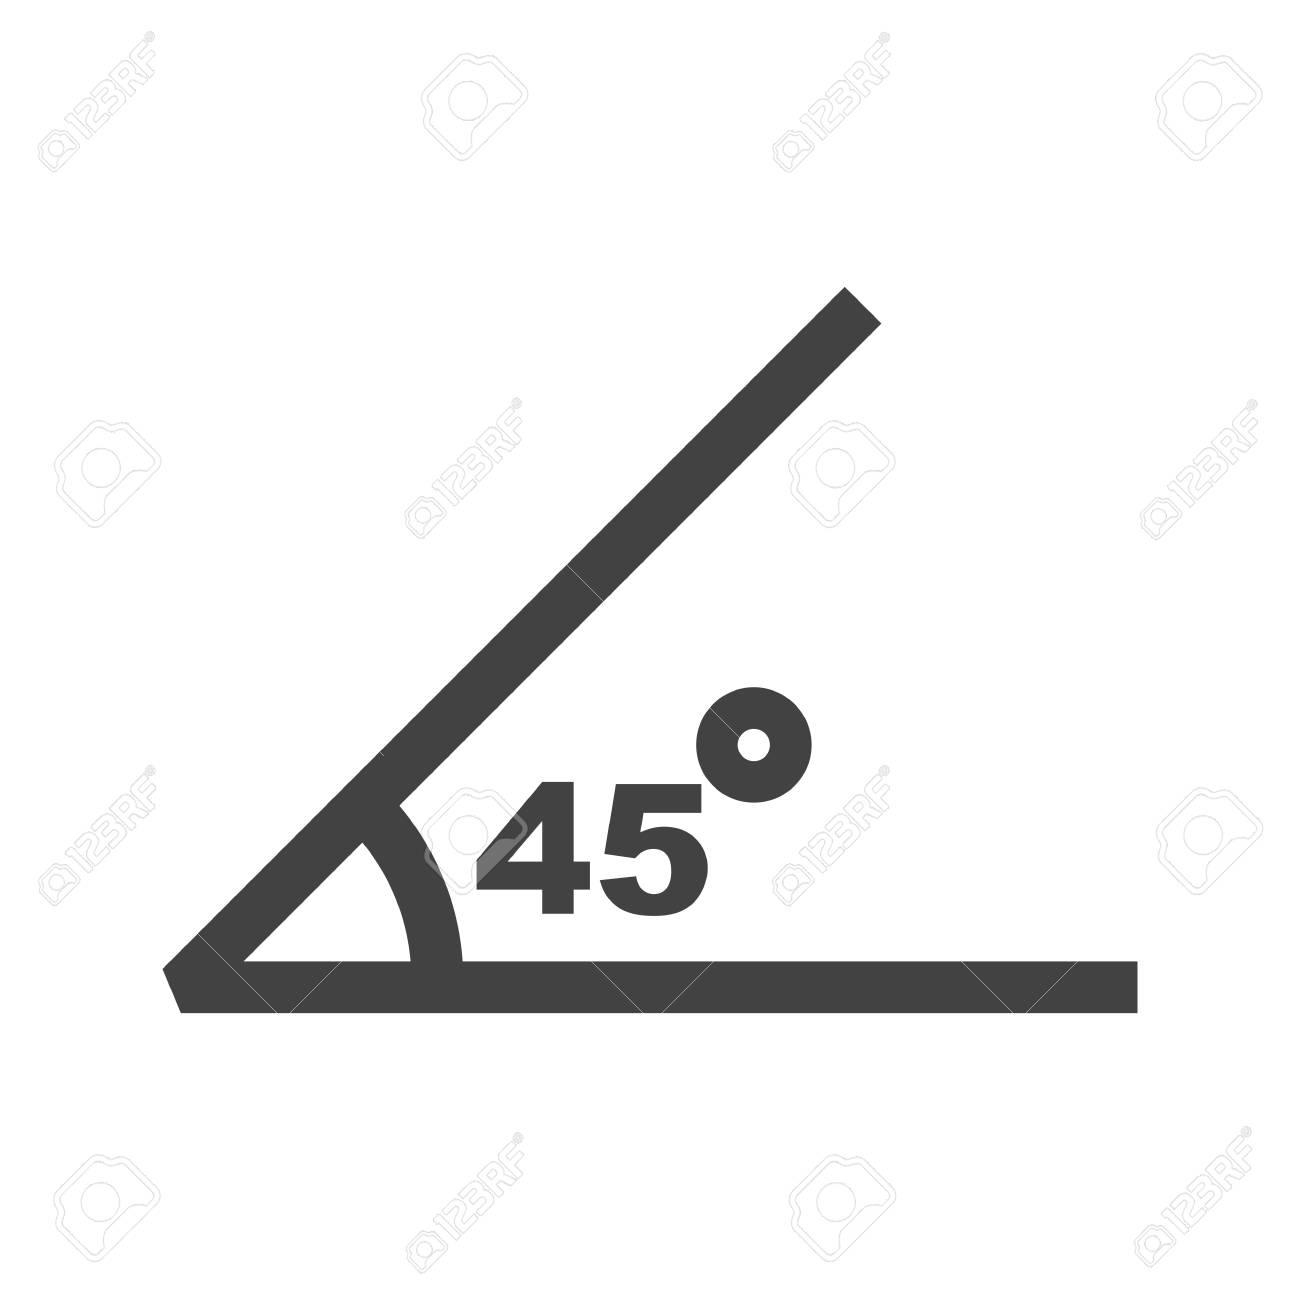 Math Geometry Angle Icon Vector Image Can Also Be Used For Math